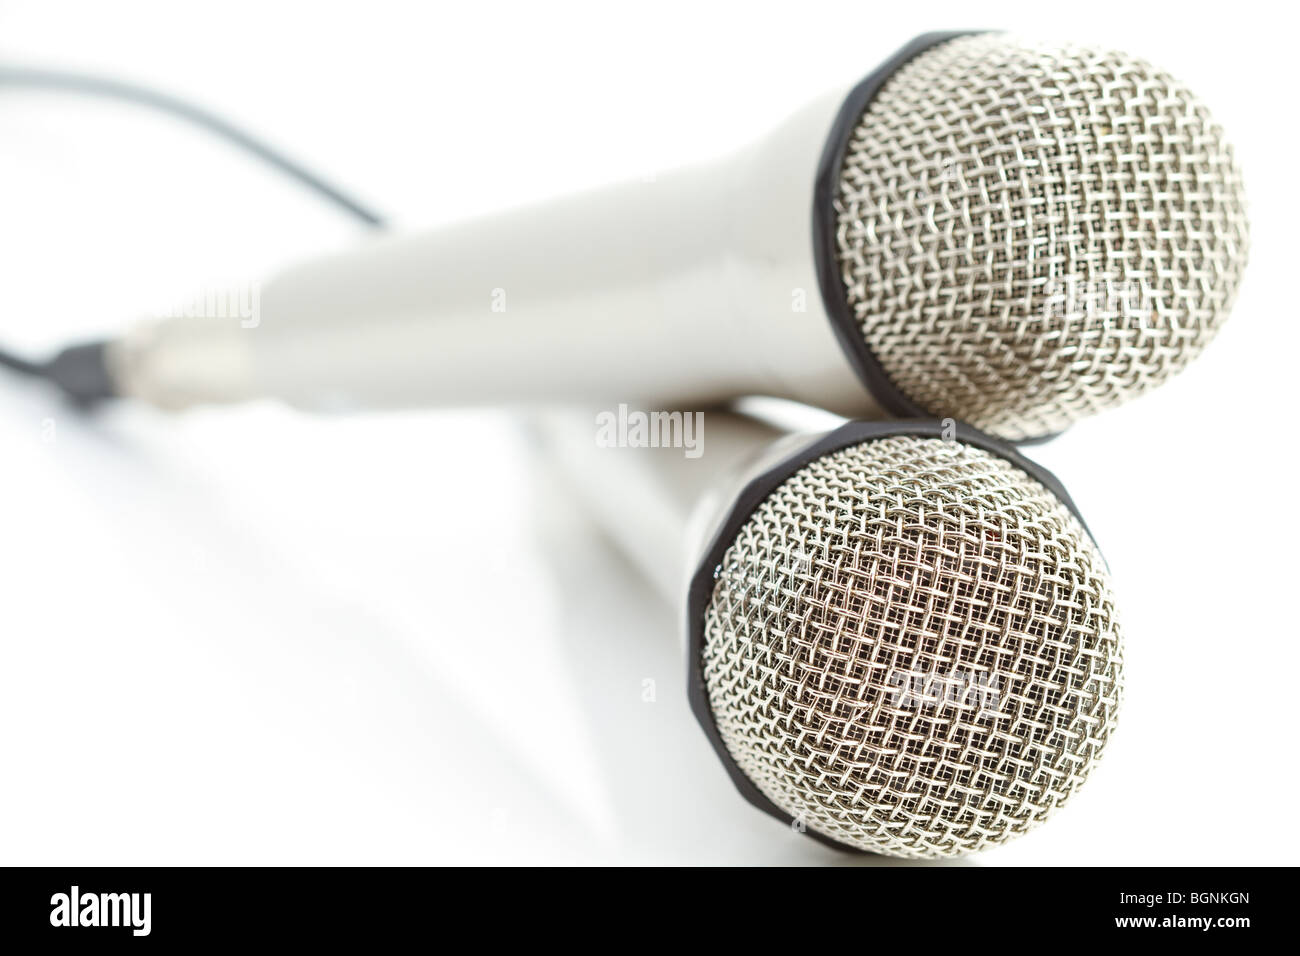 Two microphones on reflecting white background - Stock Image